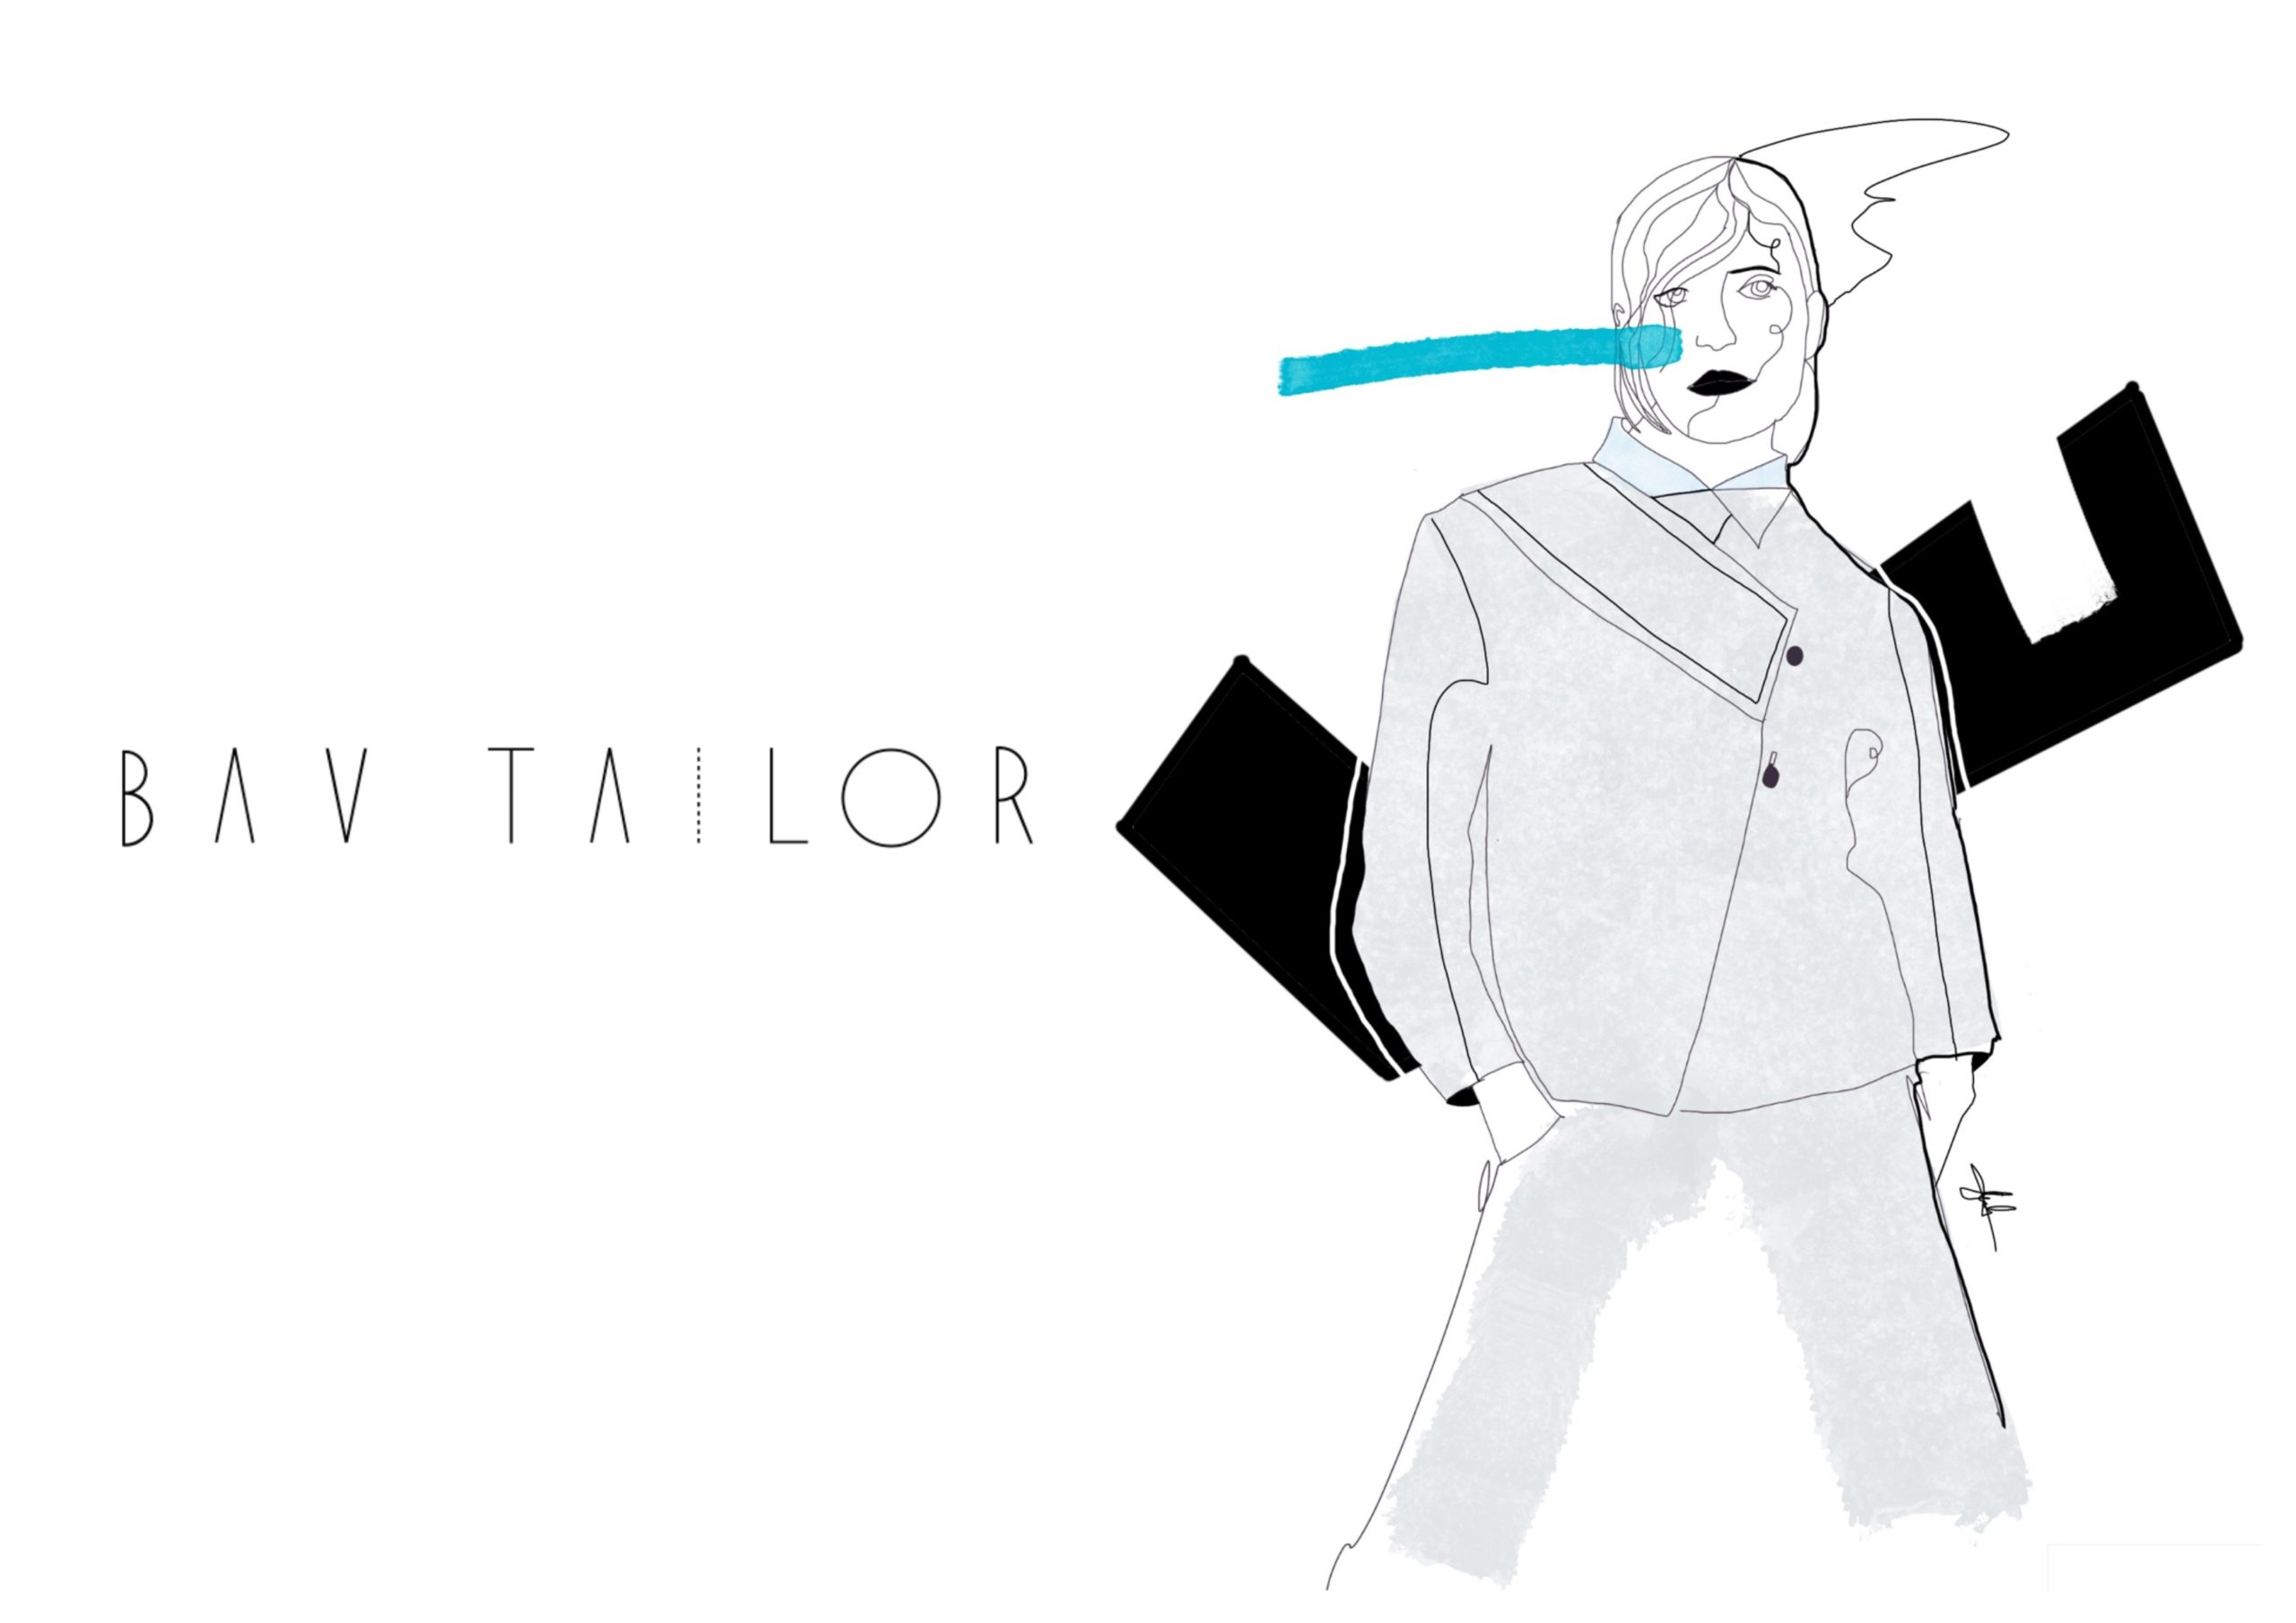 Bav Tailor SS21 Illustration by GabrieleMelodia